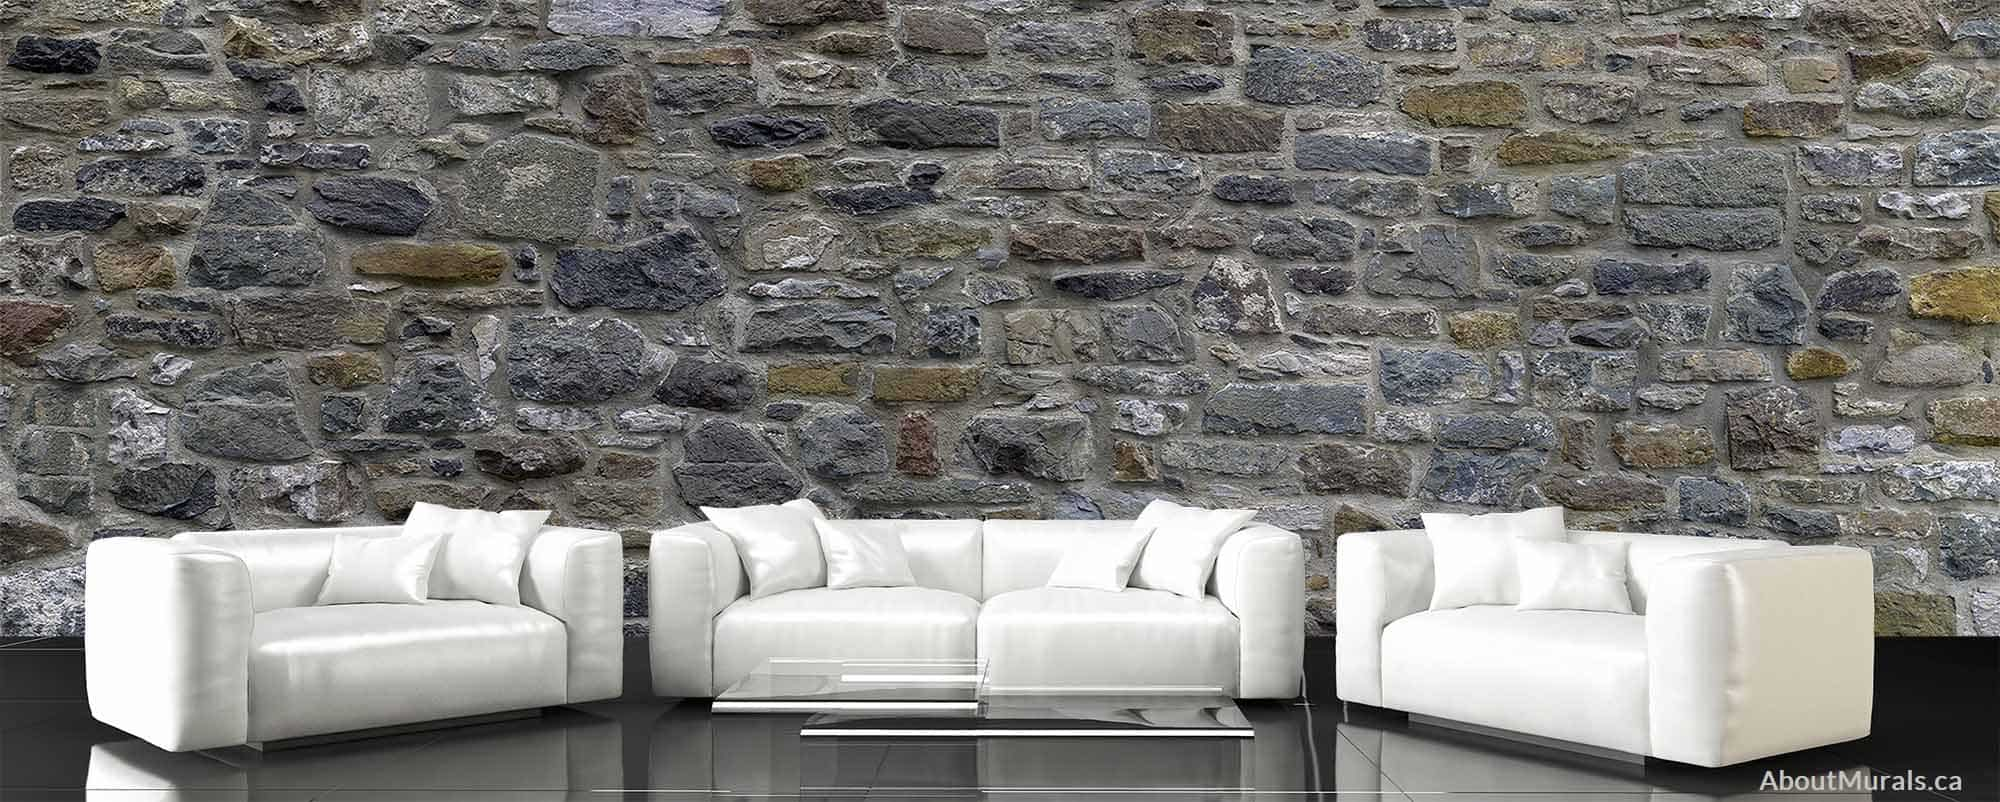 Stone Wall Mural Removable Wallpaper Sold By Aboutmurals Ca